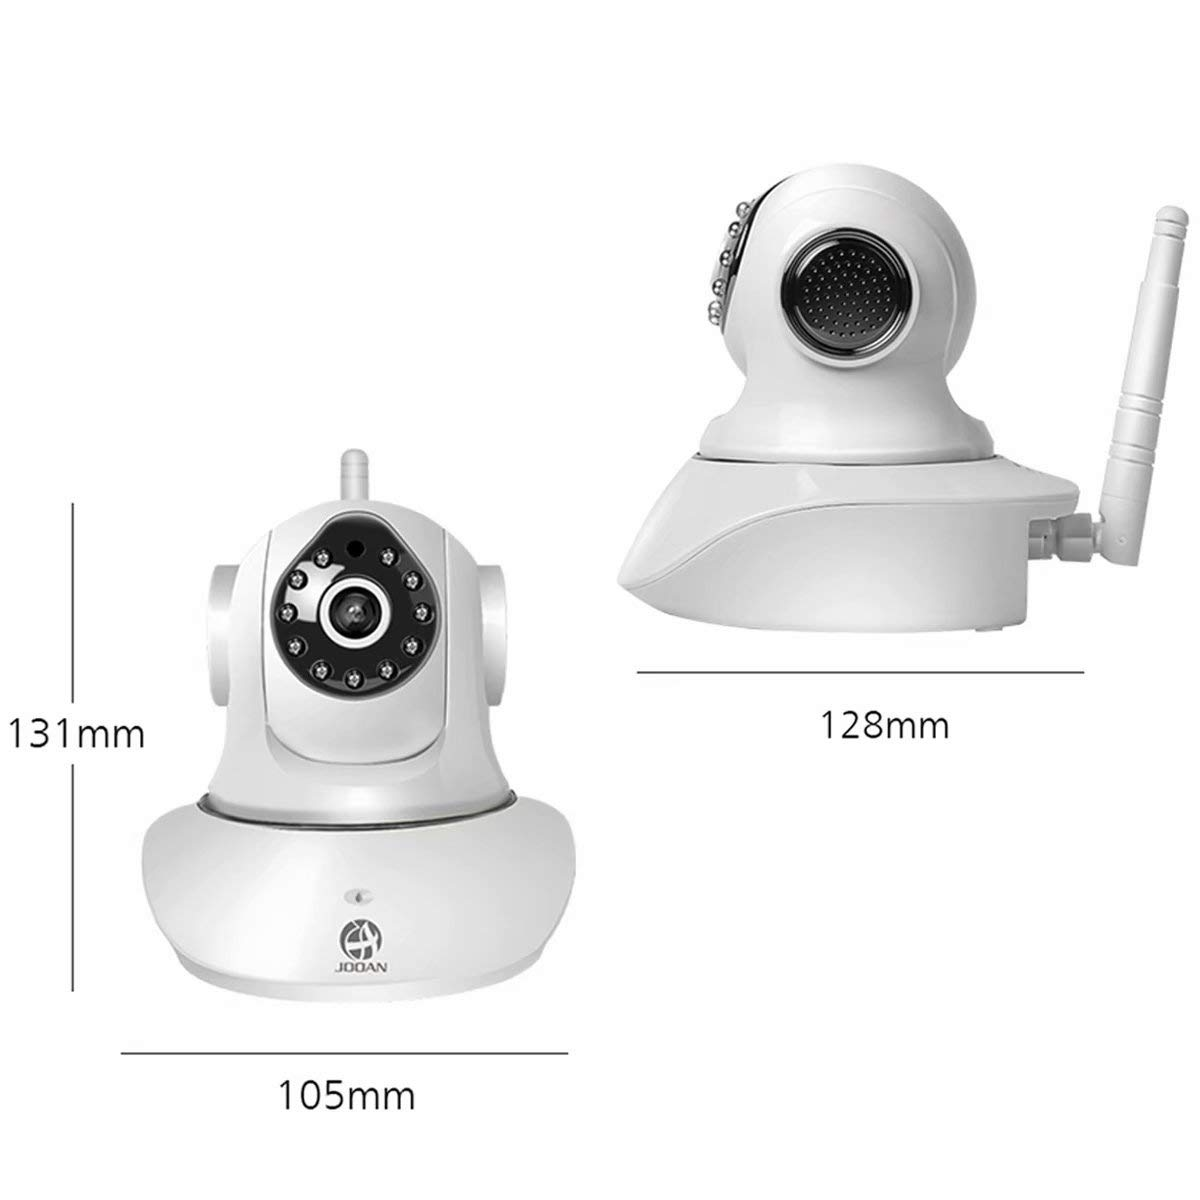 JOOAN WiFi Security Camera Wireless IP Camera with Two-Way Audio Night Vision 720P Camera for Pet Baby Monitor by JOOAN (Image #4)